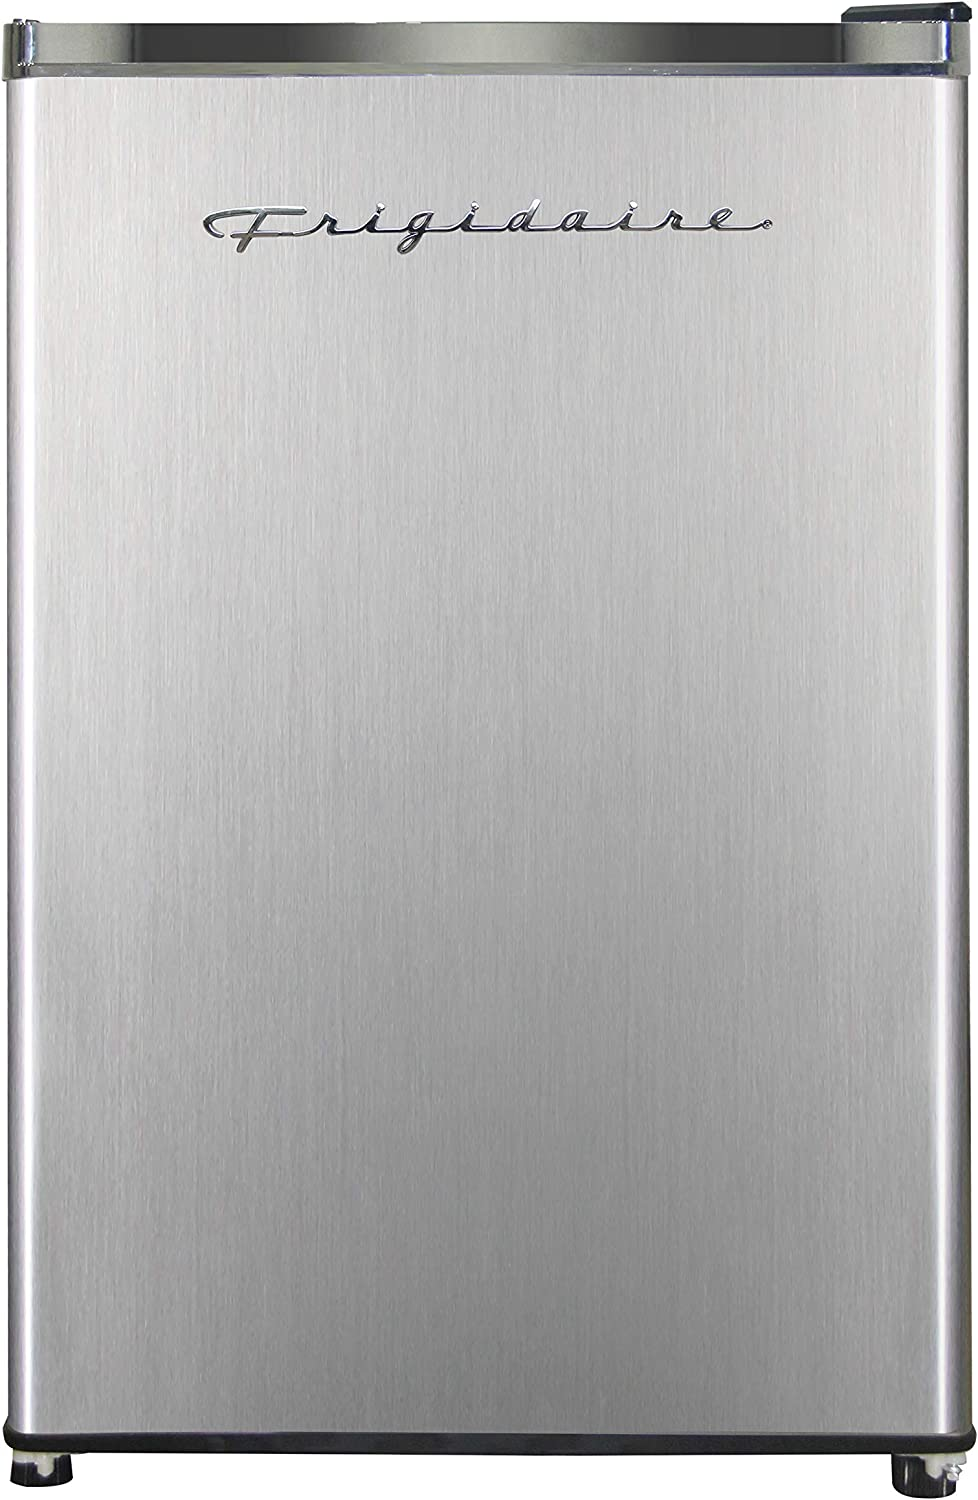 Frigidaire EFR492, 4.6 cu ft Refrigerator, Stainless Steel Door, Platinum Series